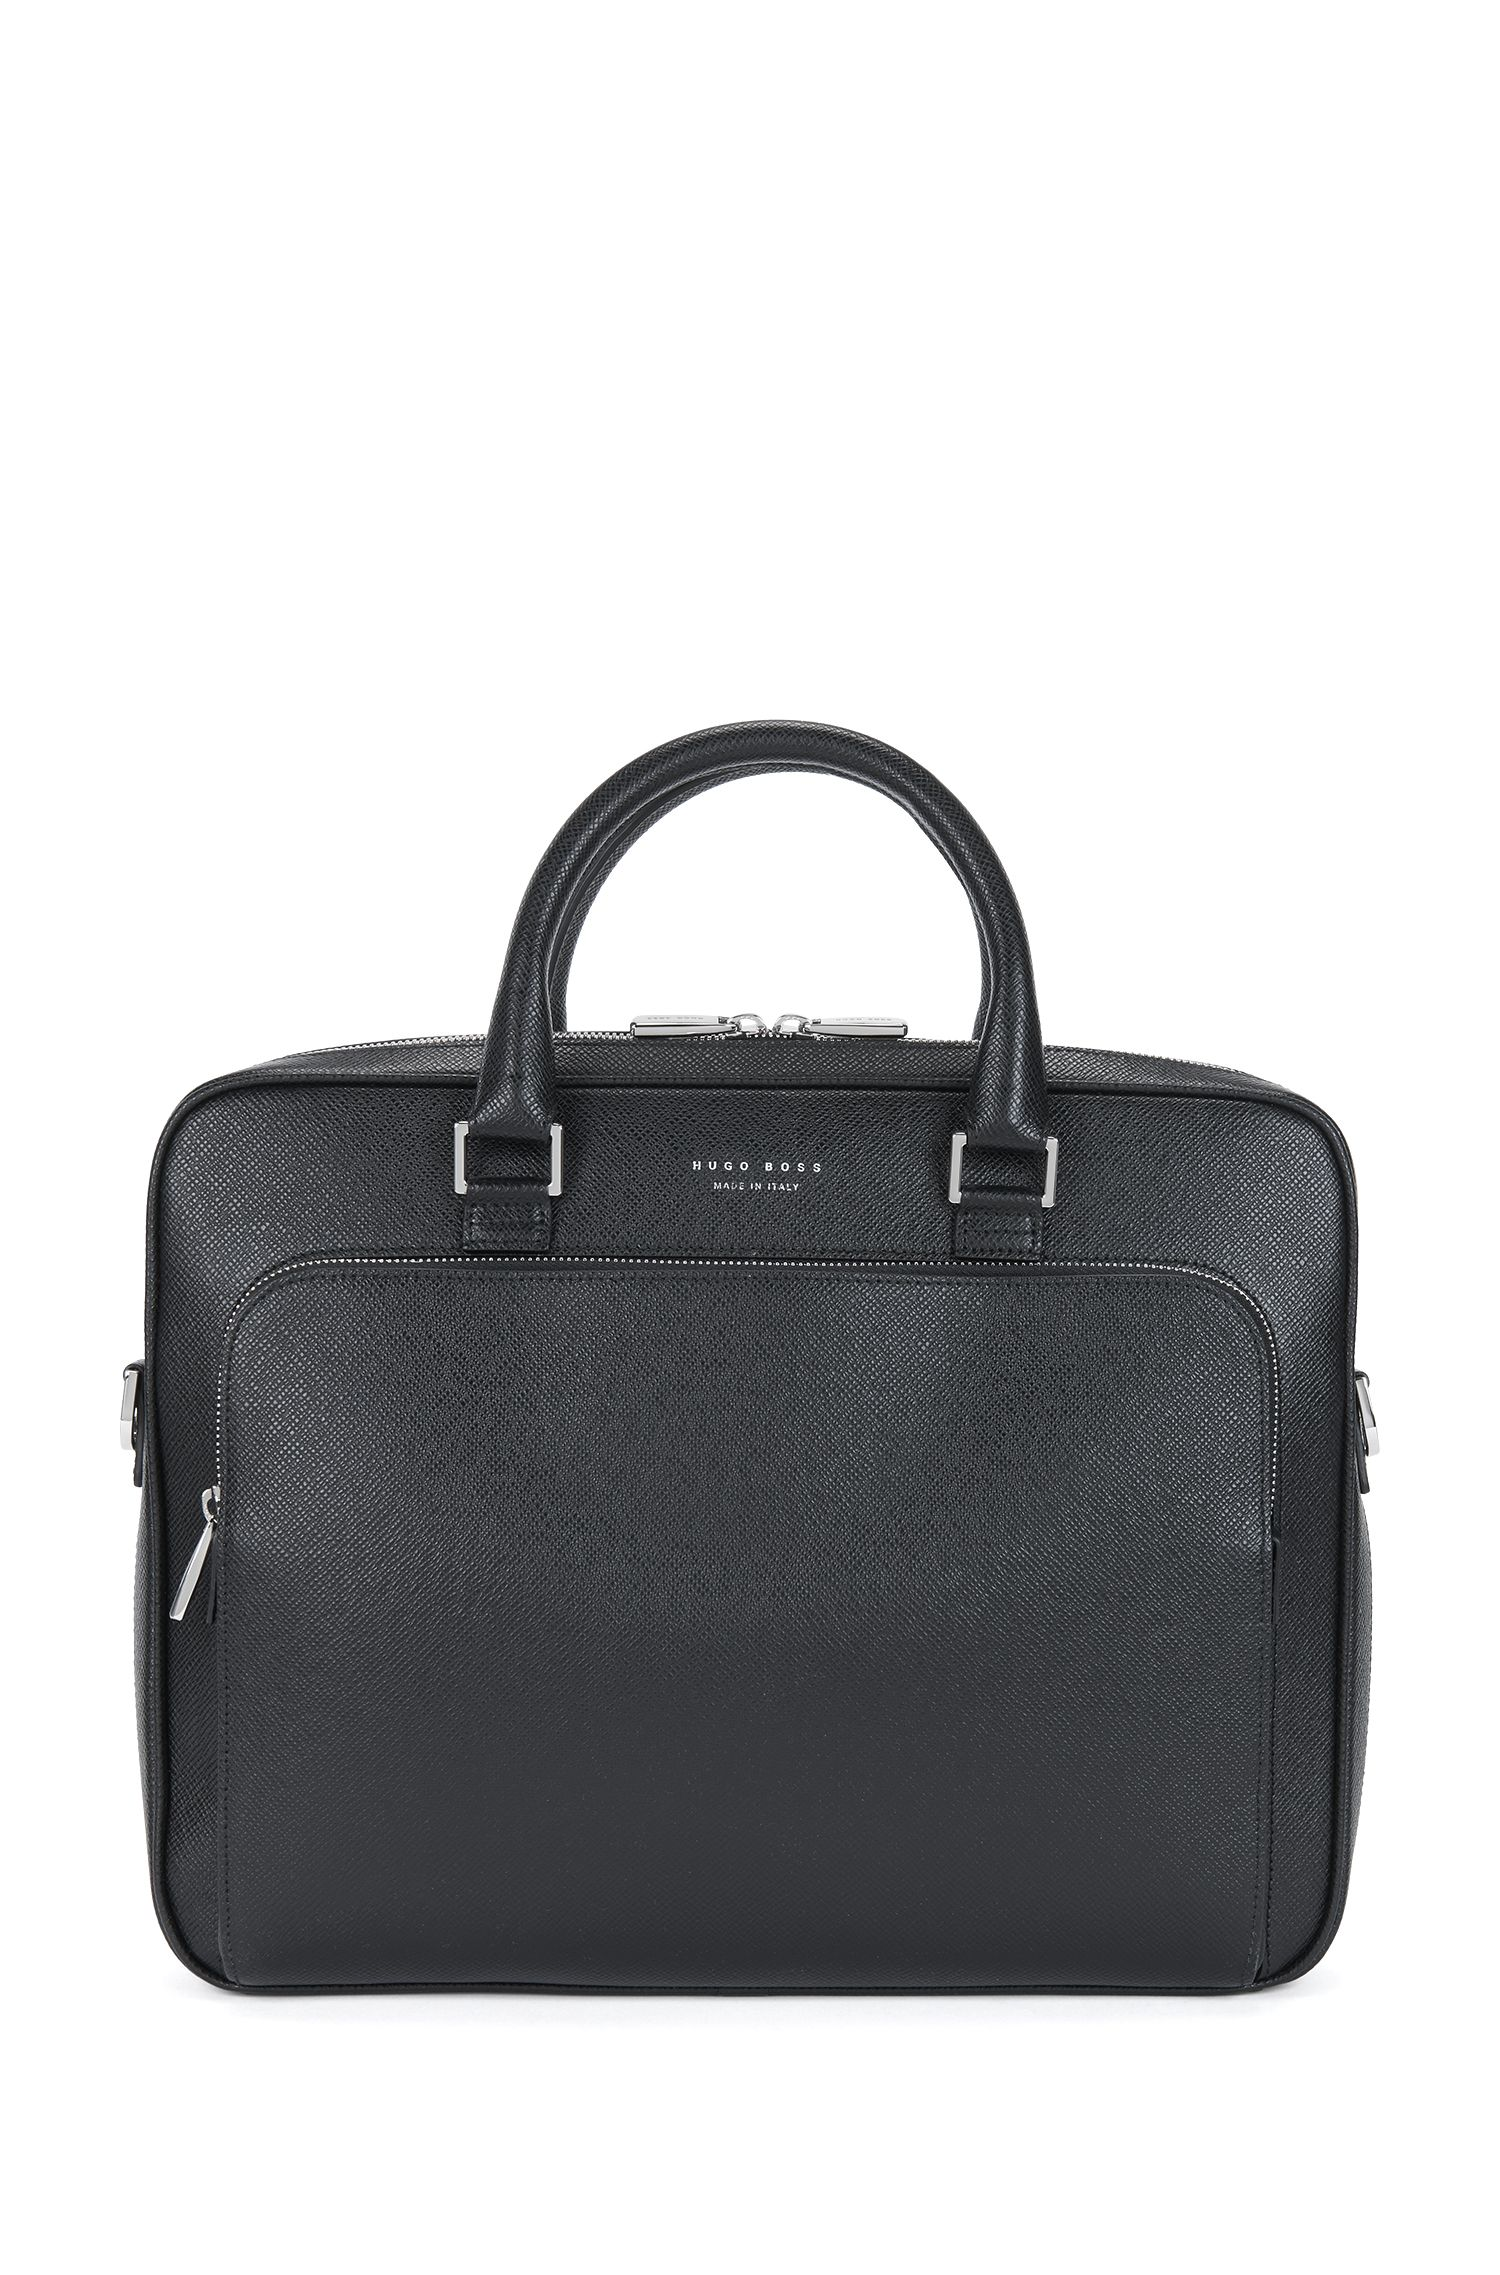 Porte-document BOSS de la collection Signature en cuir palmellato